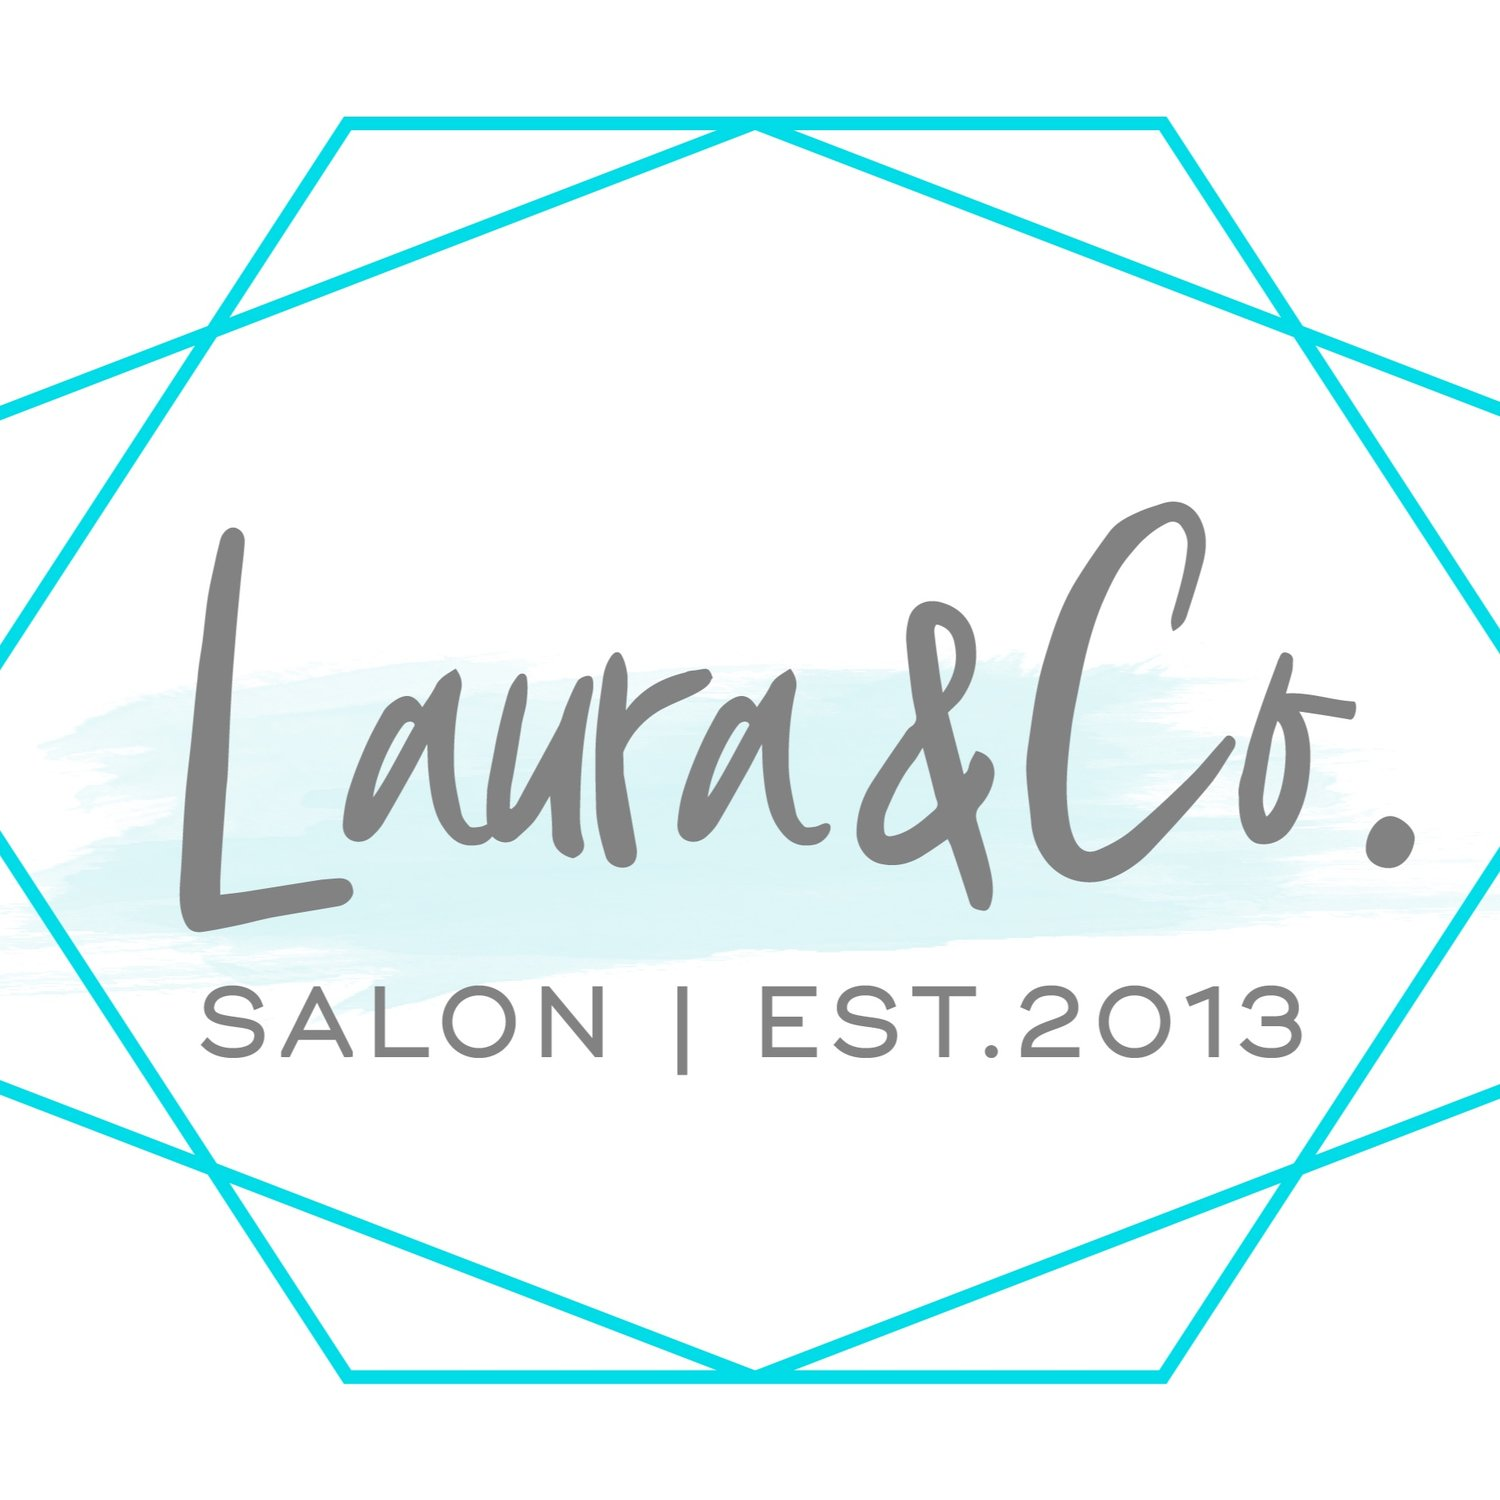 LauraAndCoSalon